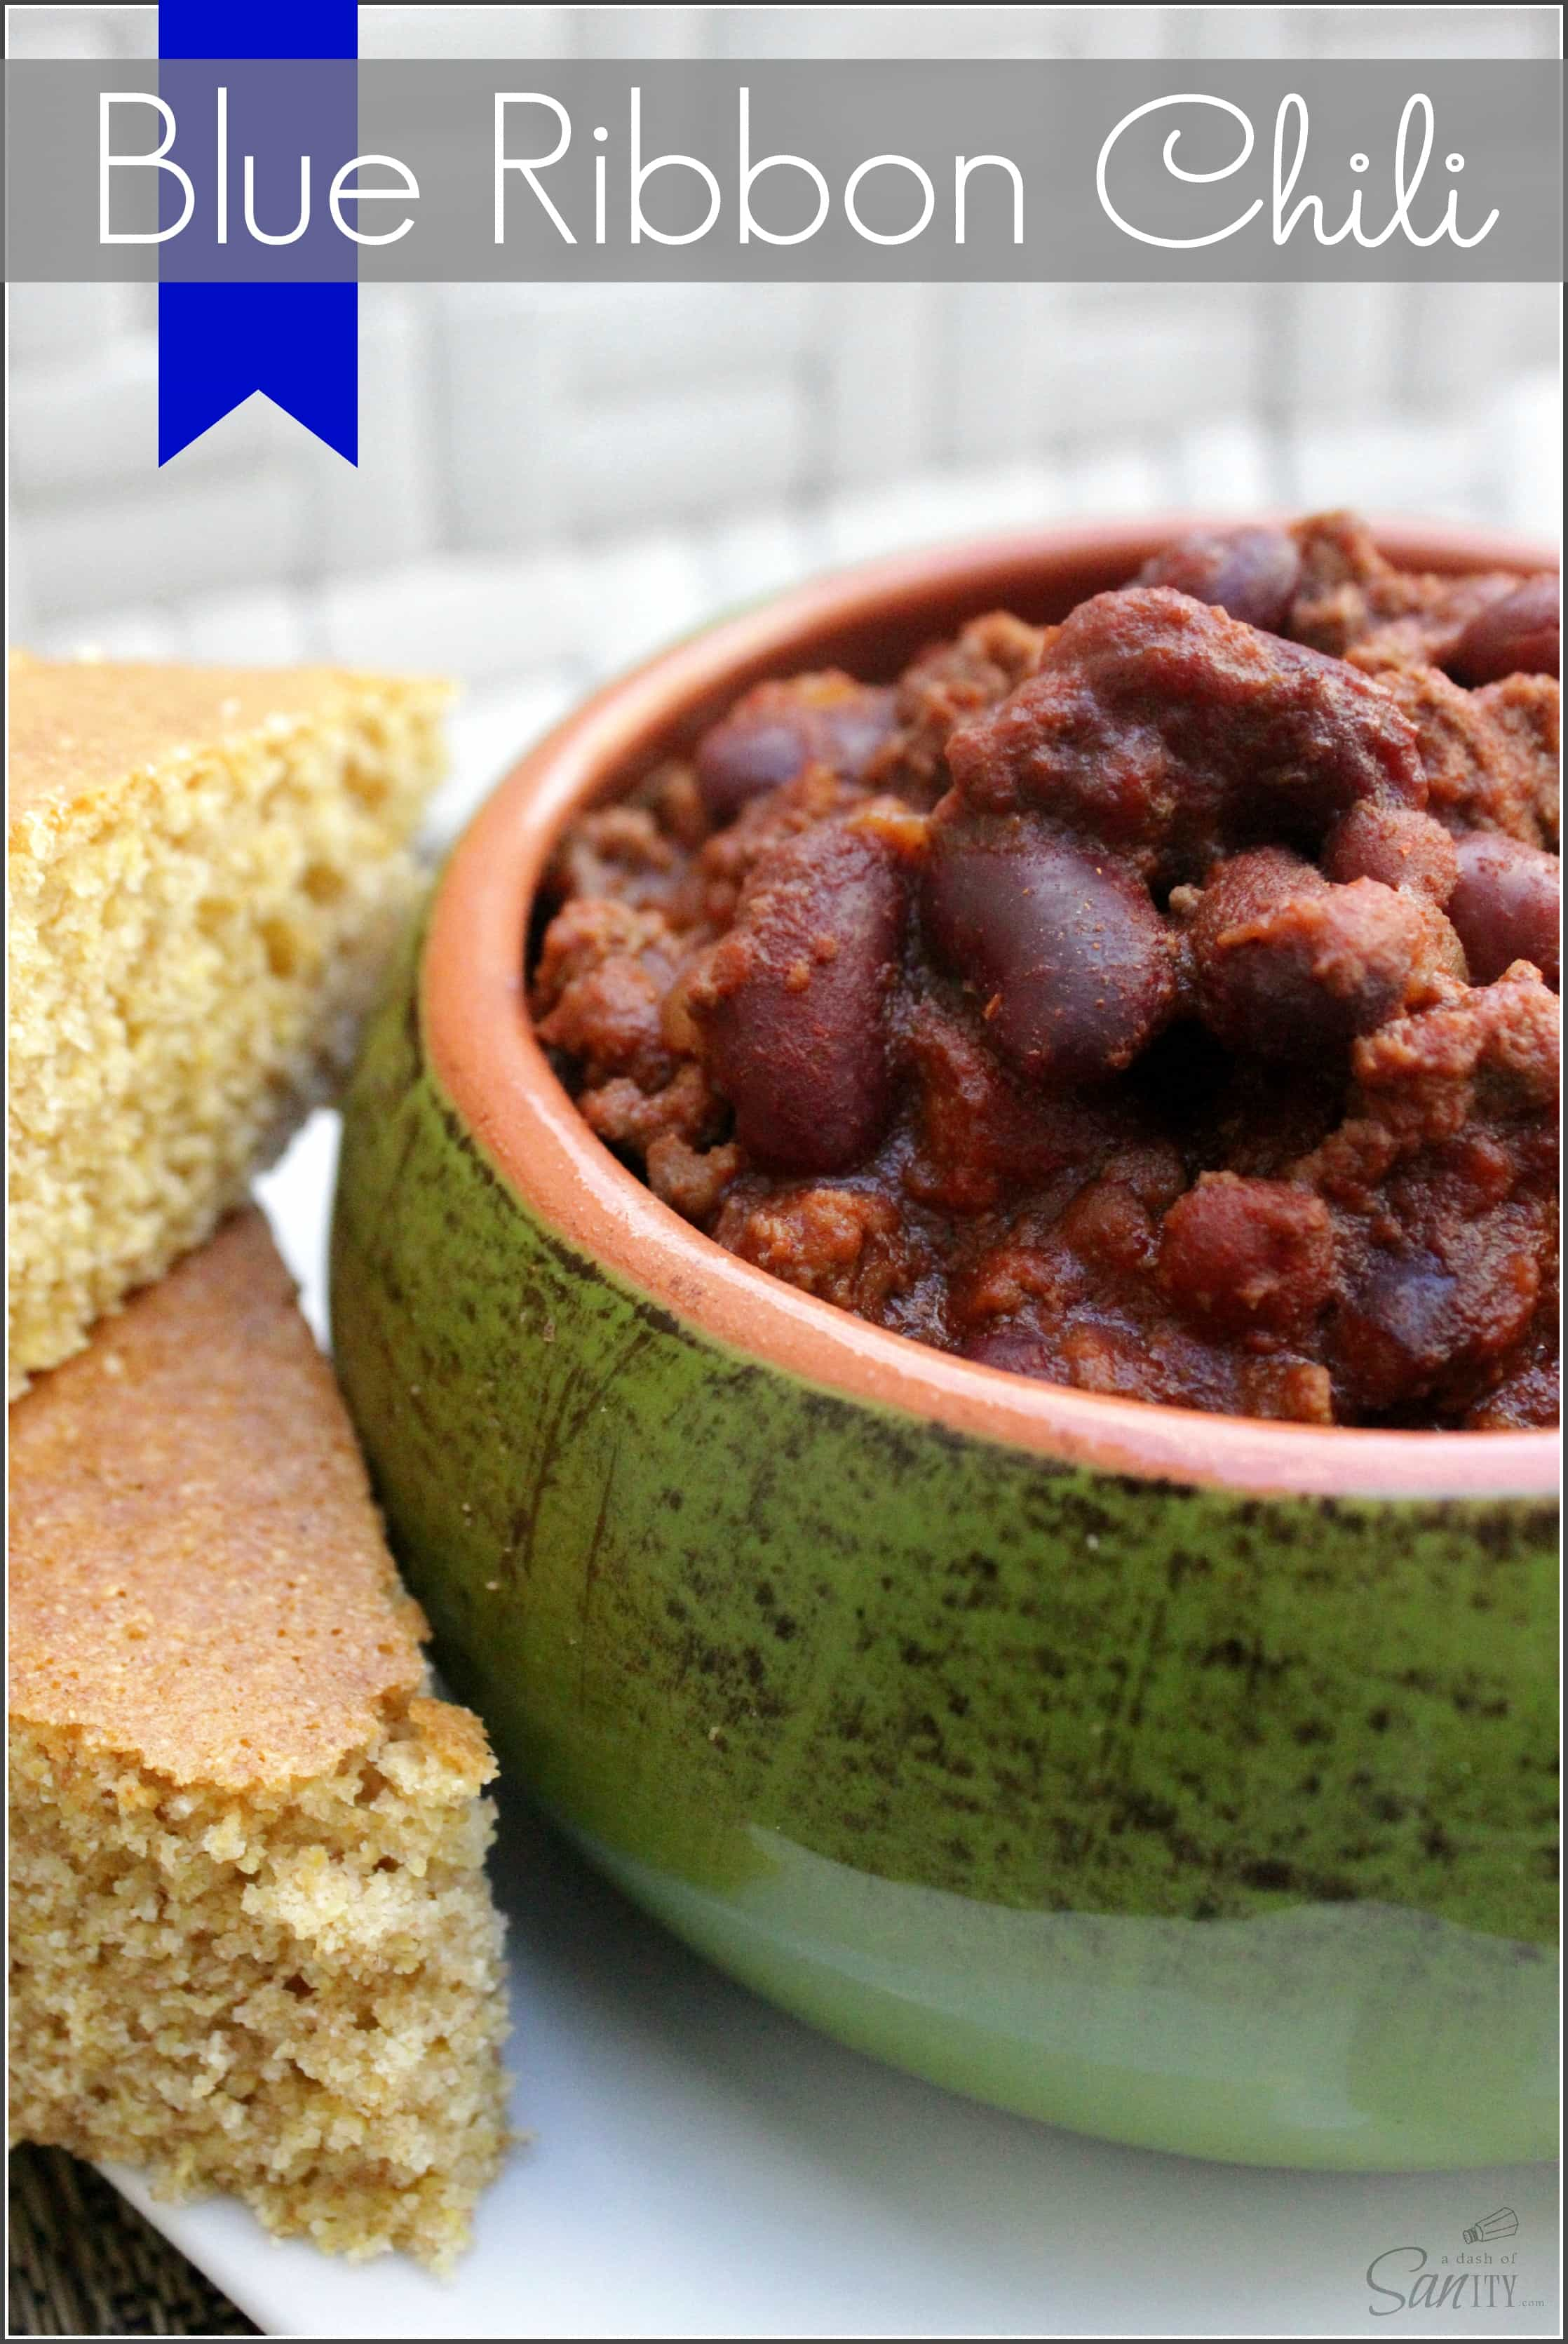 Blue Ribbon Chili in a bowl on a plate with cornbread slices